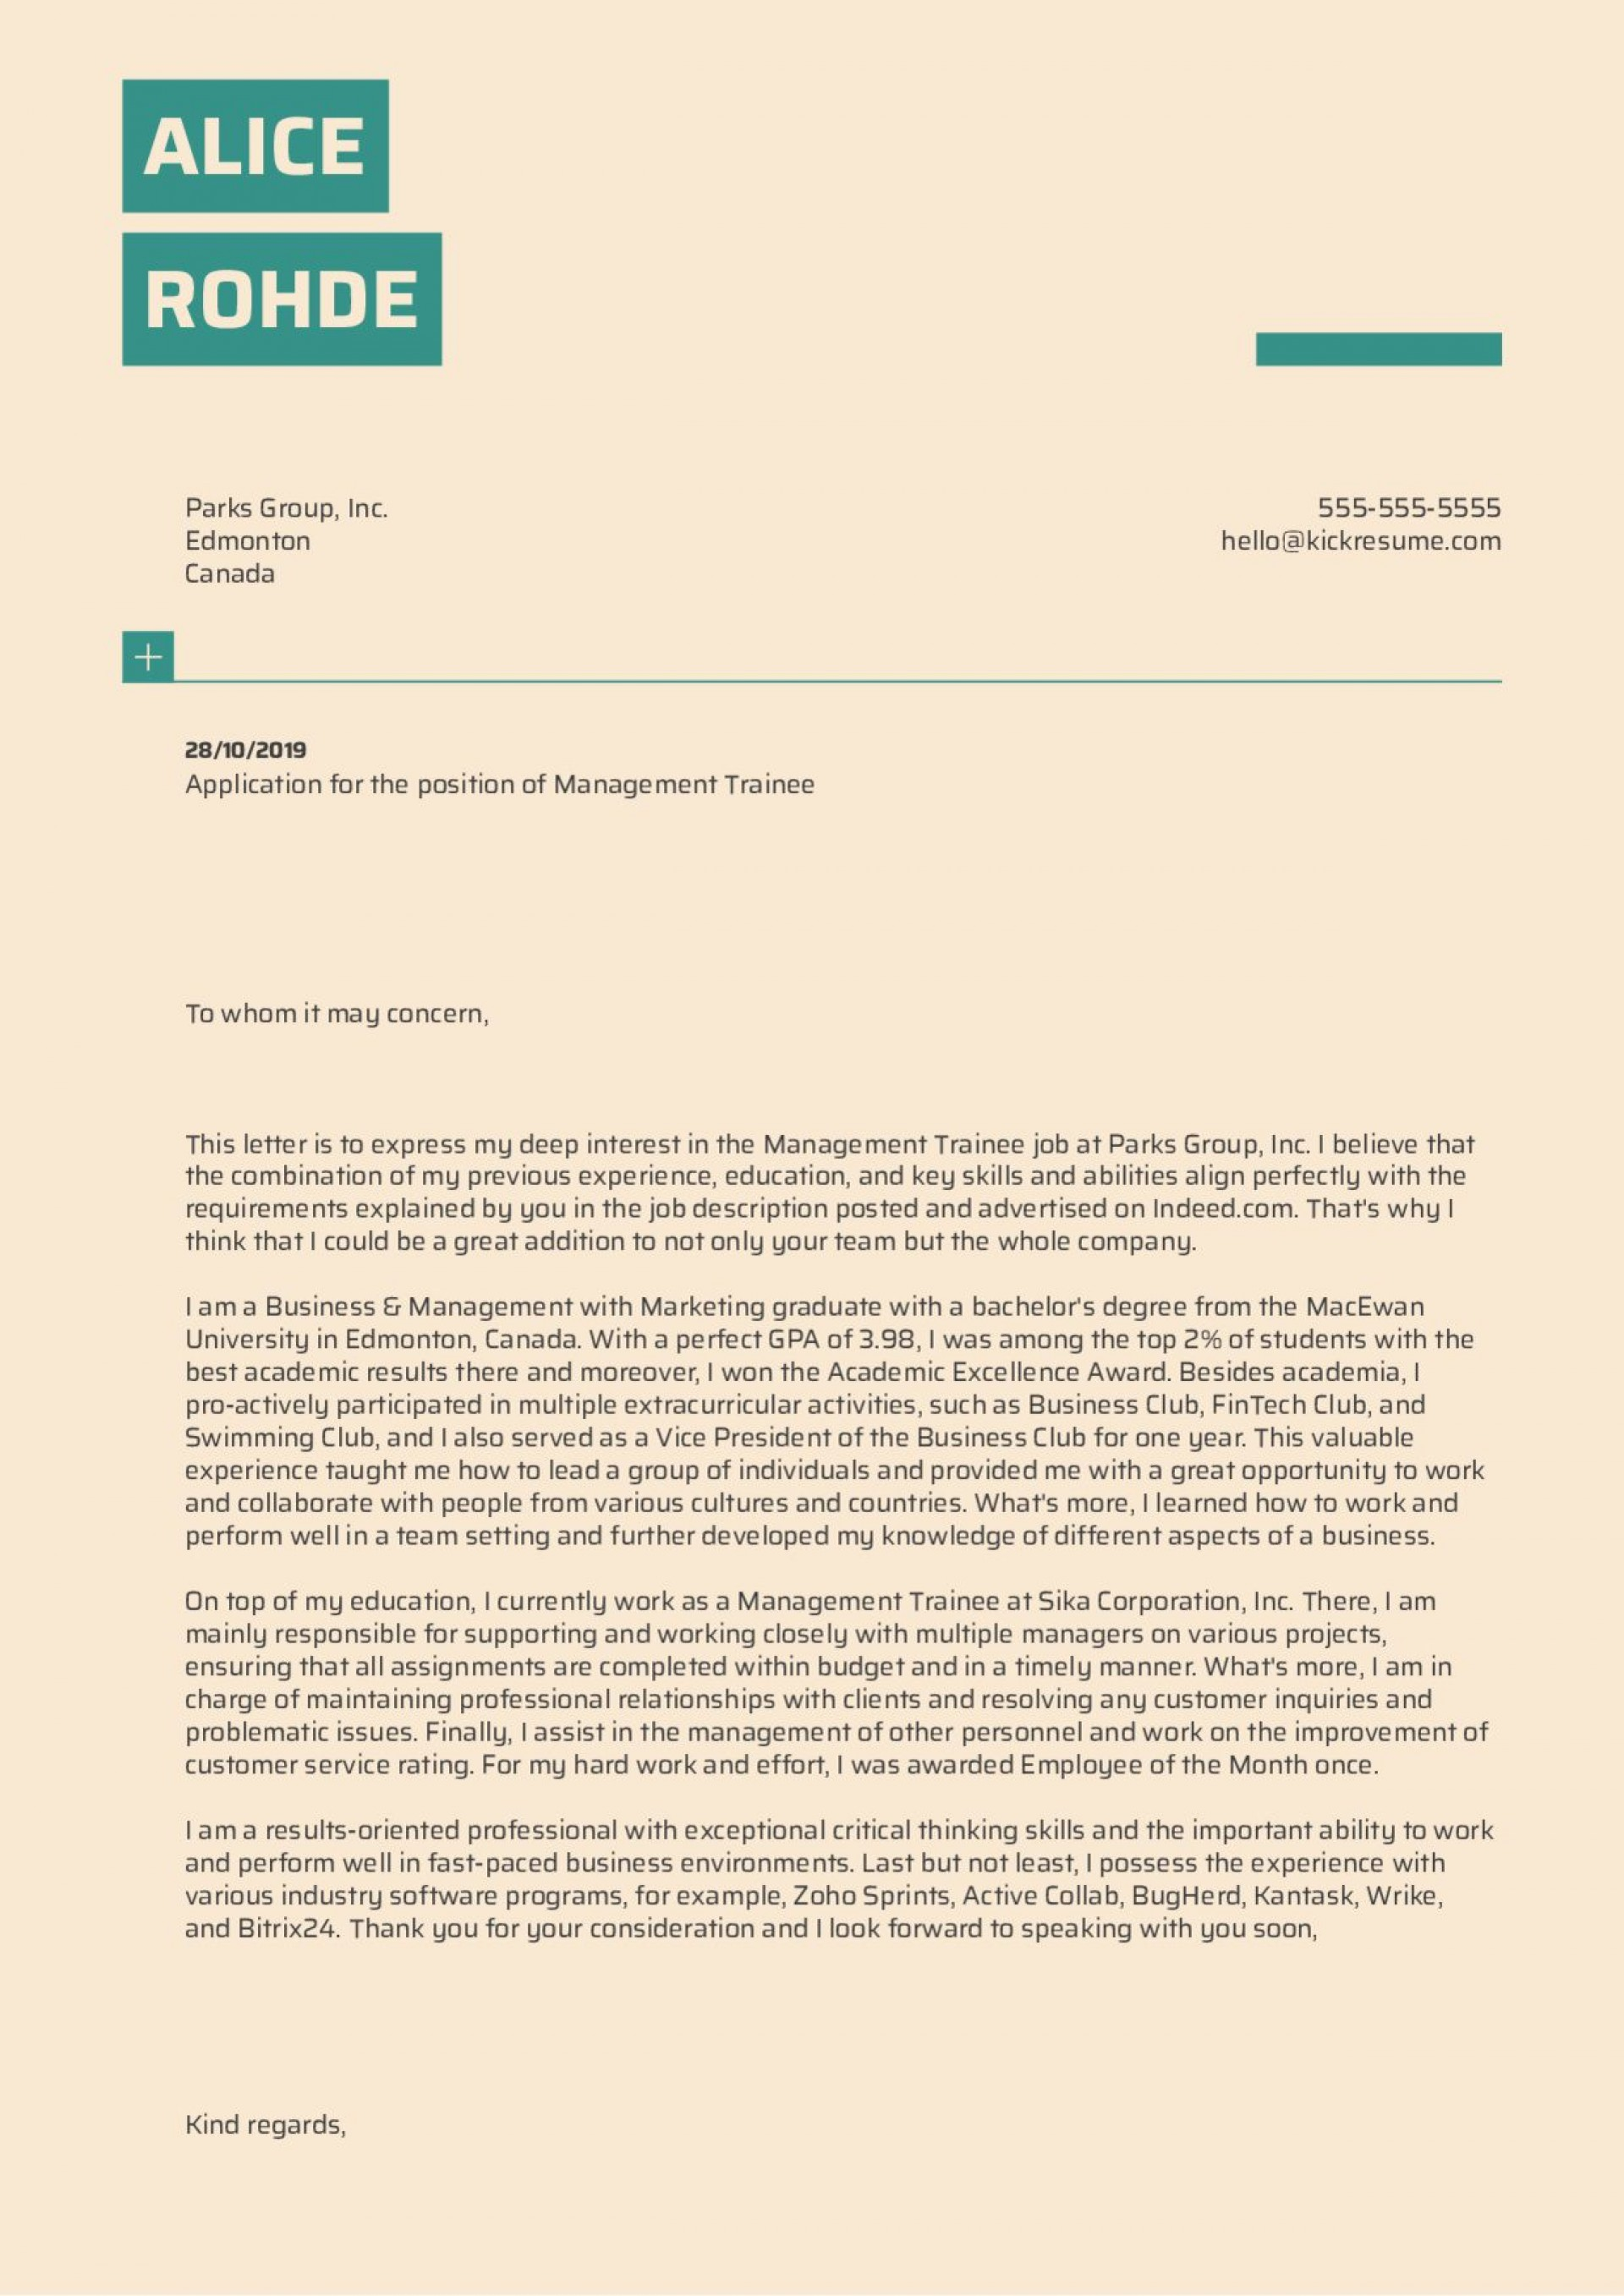 004 Unique Short Cover Letter Template Highest Quality  Uk Story1920